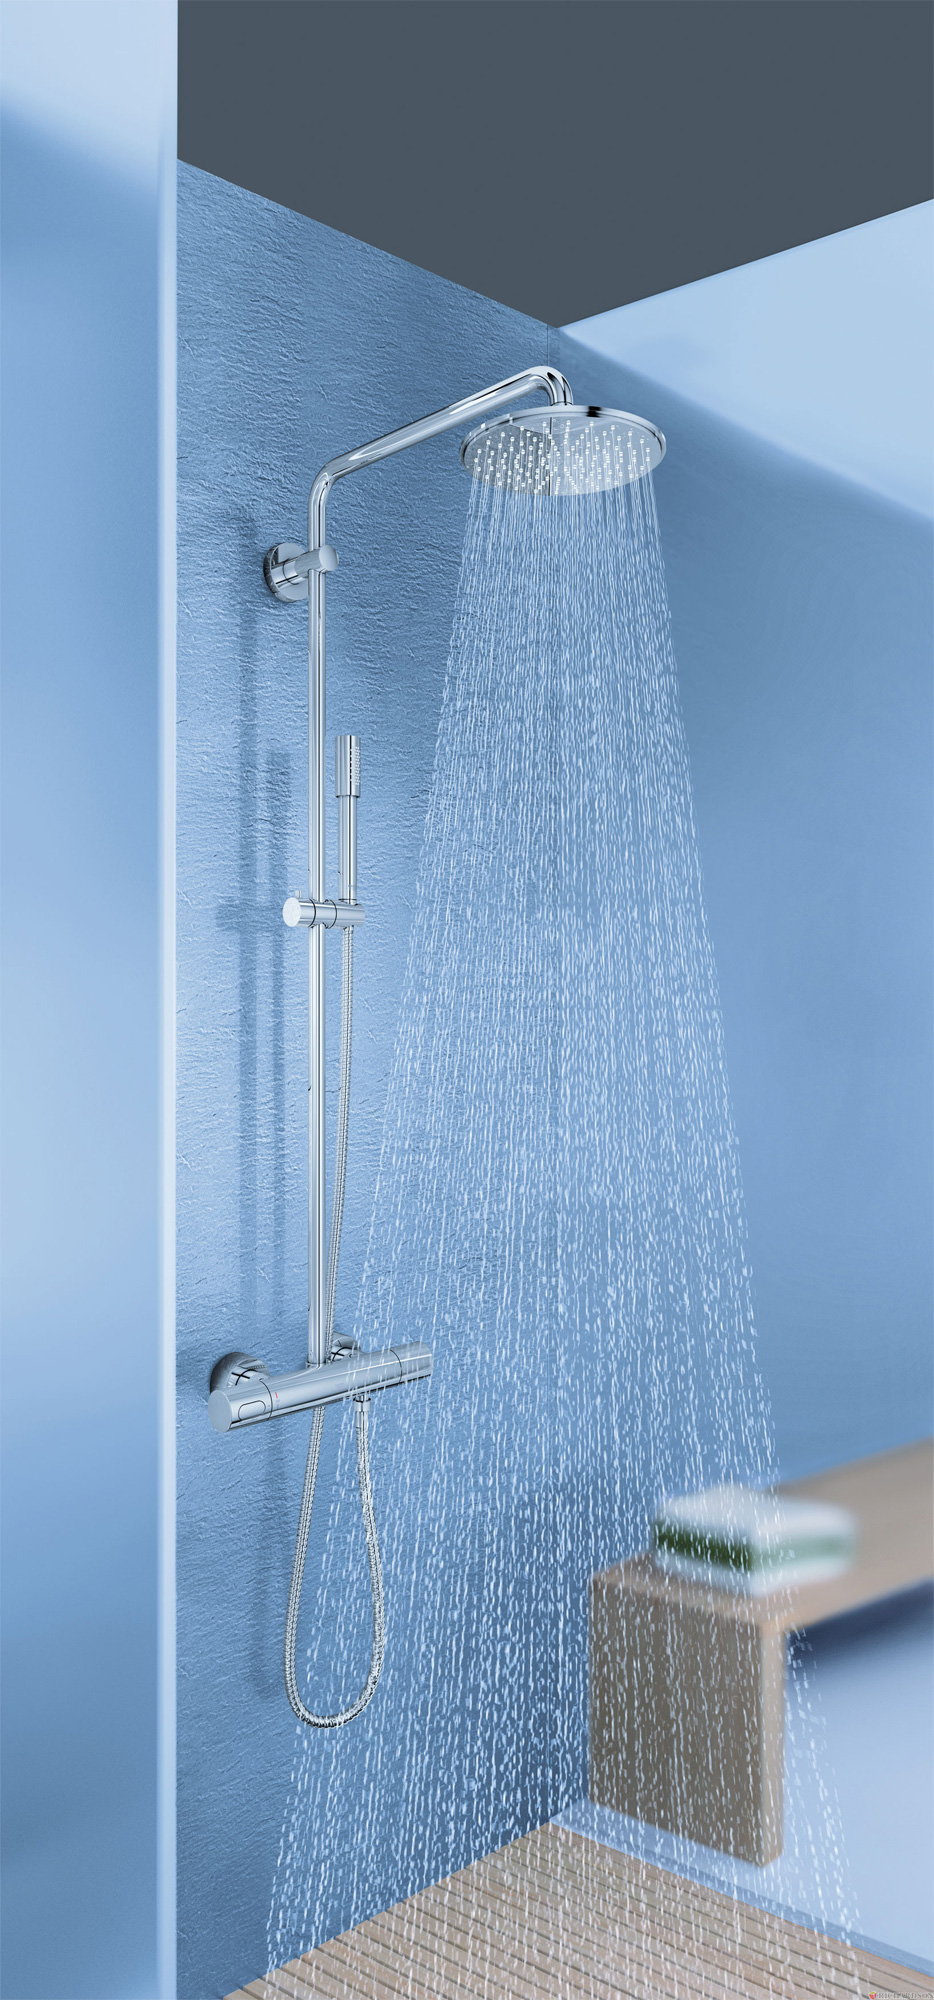 grohe spa rainshower wall mounted shower system with. Black Bedroom Furniture Sets. Home Design Ideas